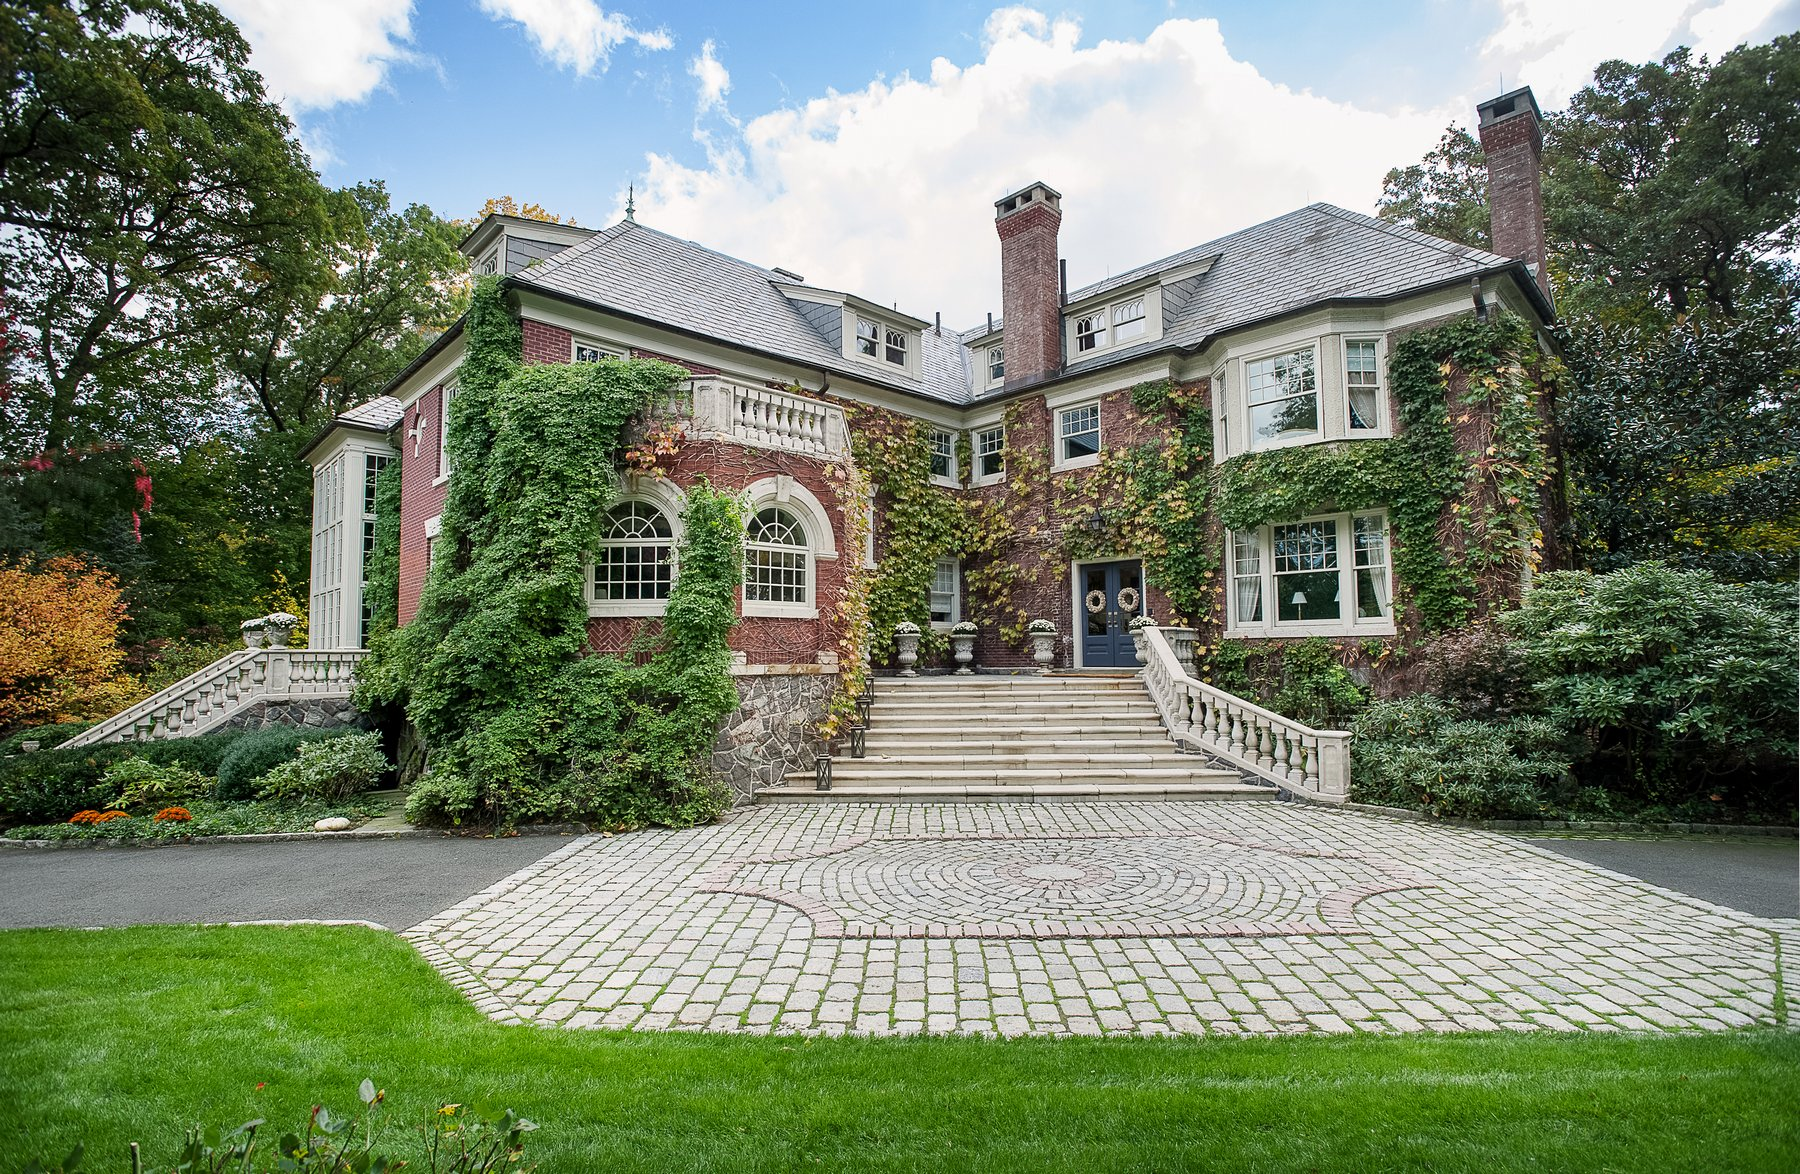 Single Family Home for Sale at Prestigious Manor Home 11 Ridge Road Summit, New Jersey 07901 United States